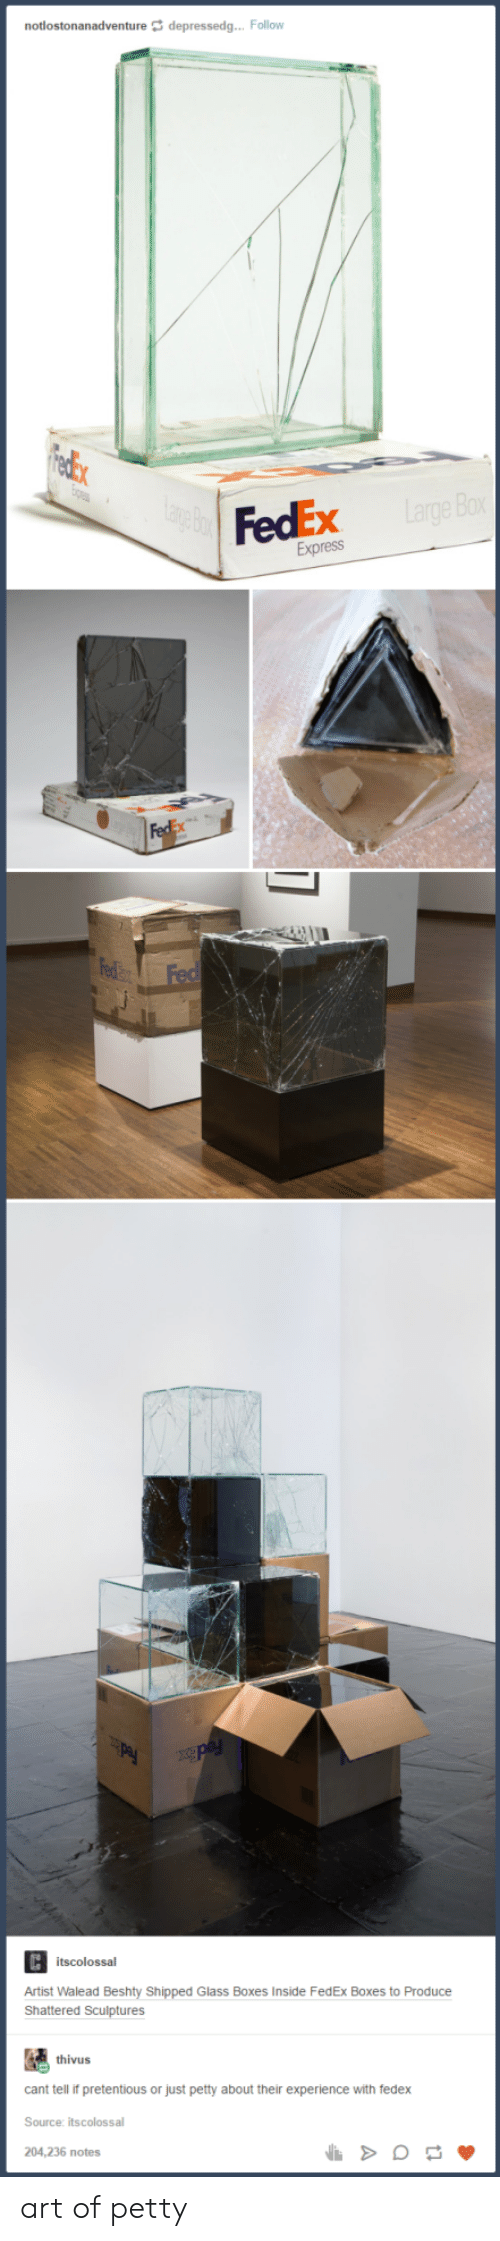 Petty, Pretentious, and Express: notlostonanadventure depressedg... Follow  FedEx  Express  Artist Walead Beshty Shipped Glass Boxes Inside FedEx Boxes to Produce  Shattered Sculptures  thivus  cant tell if pretentious or just petty about their experience with fedex  Source: itscolossal  204,236 notes art of petty